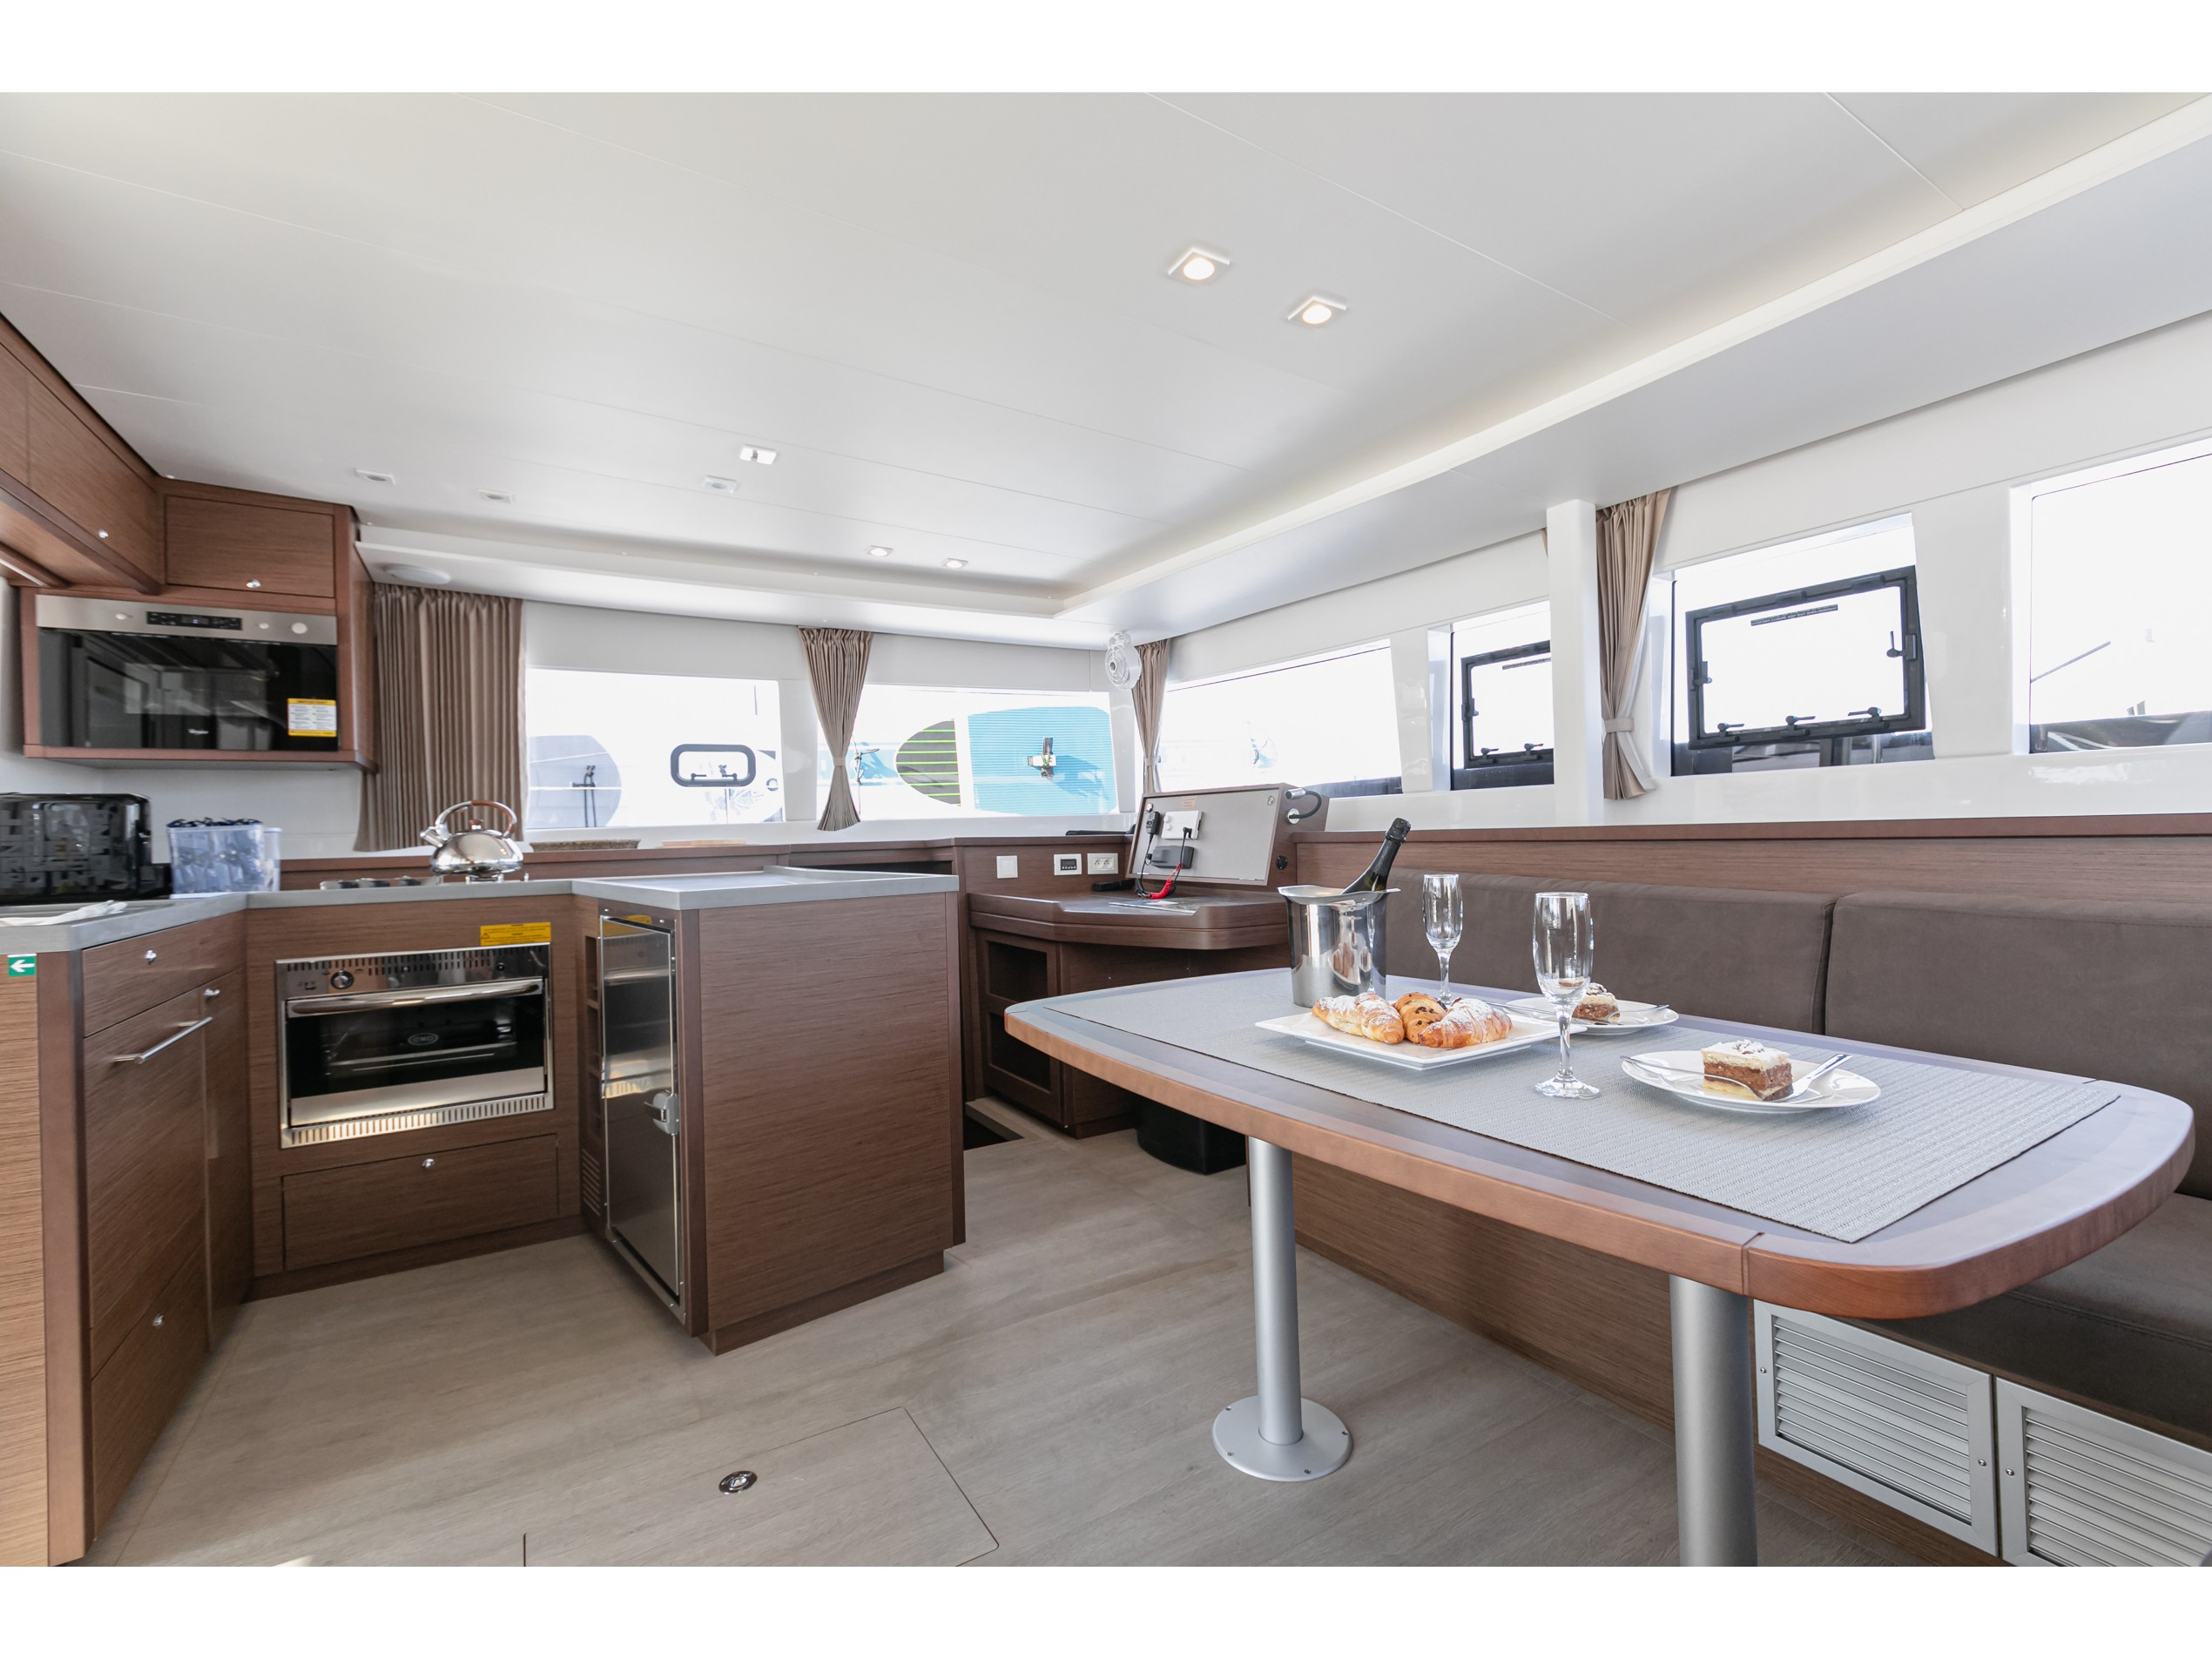 Lagoon 450 F (2019) equipped with generator, A/C ( (WIDE DREAM) Interior image - 19